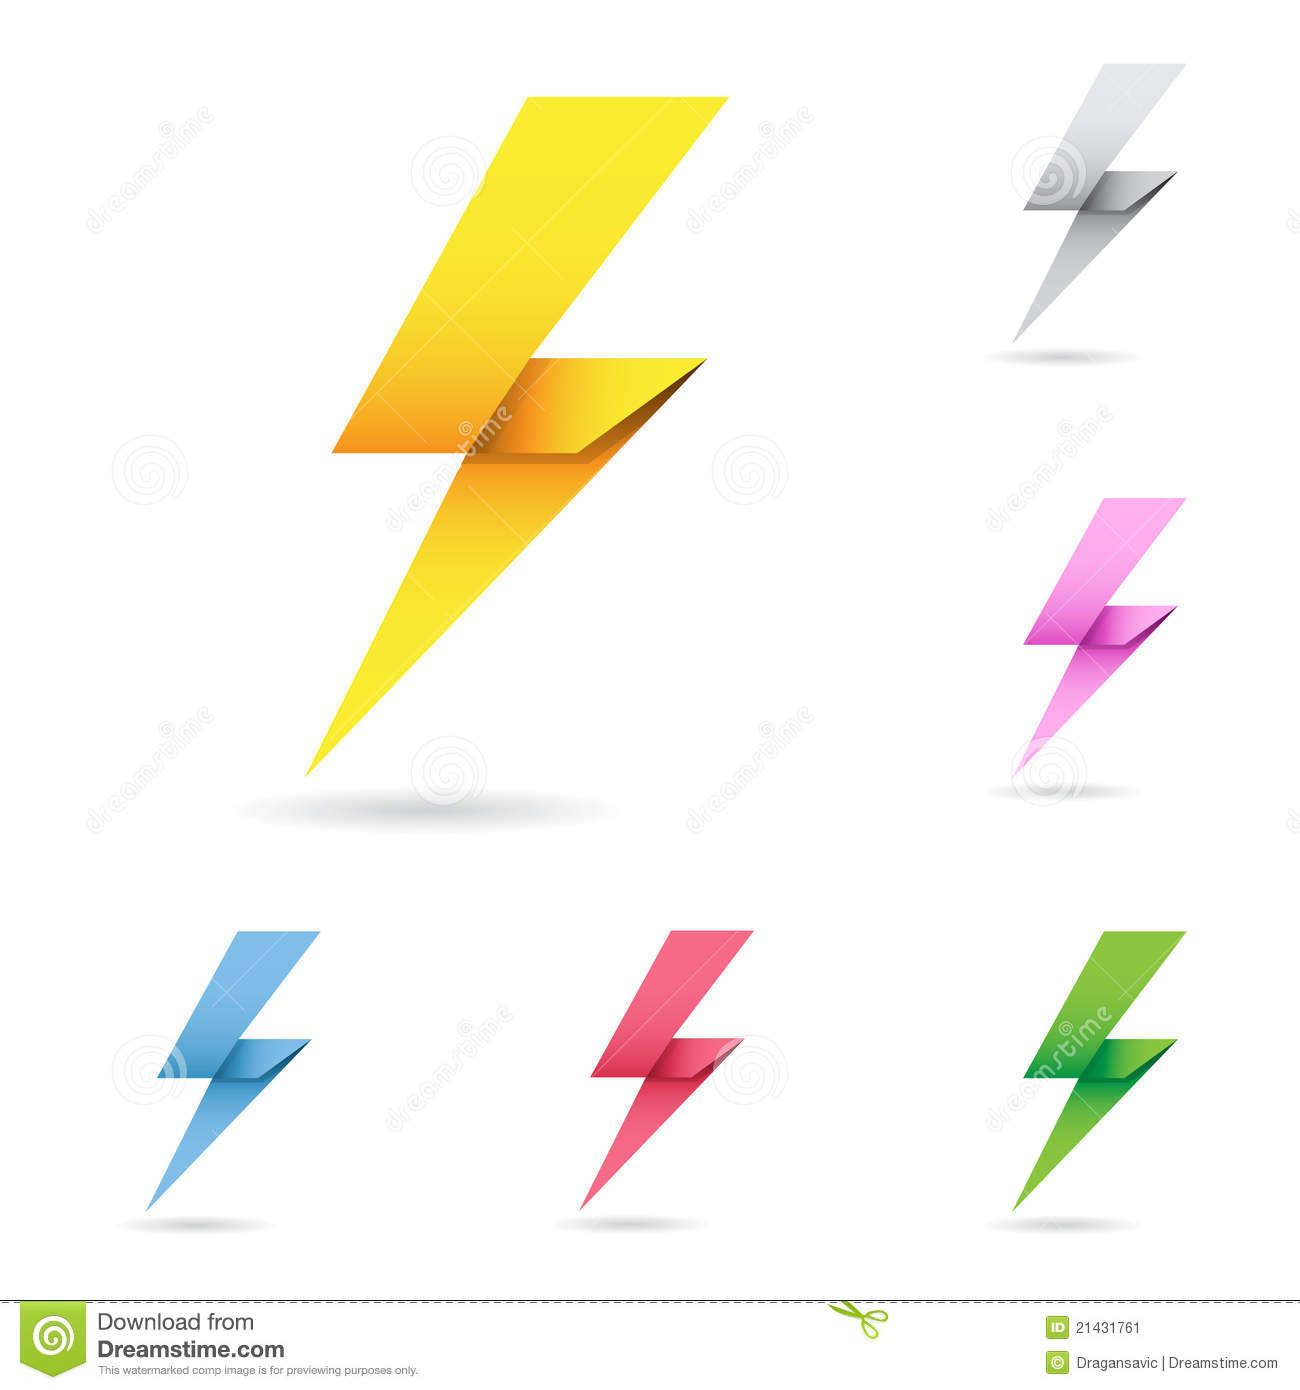 Set of origami lightning bolts download from over 38 million origami jeuxipadfo Gallery